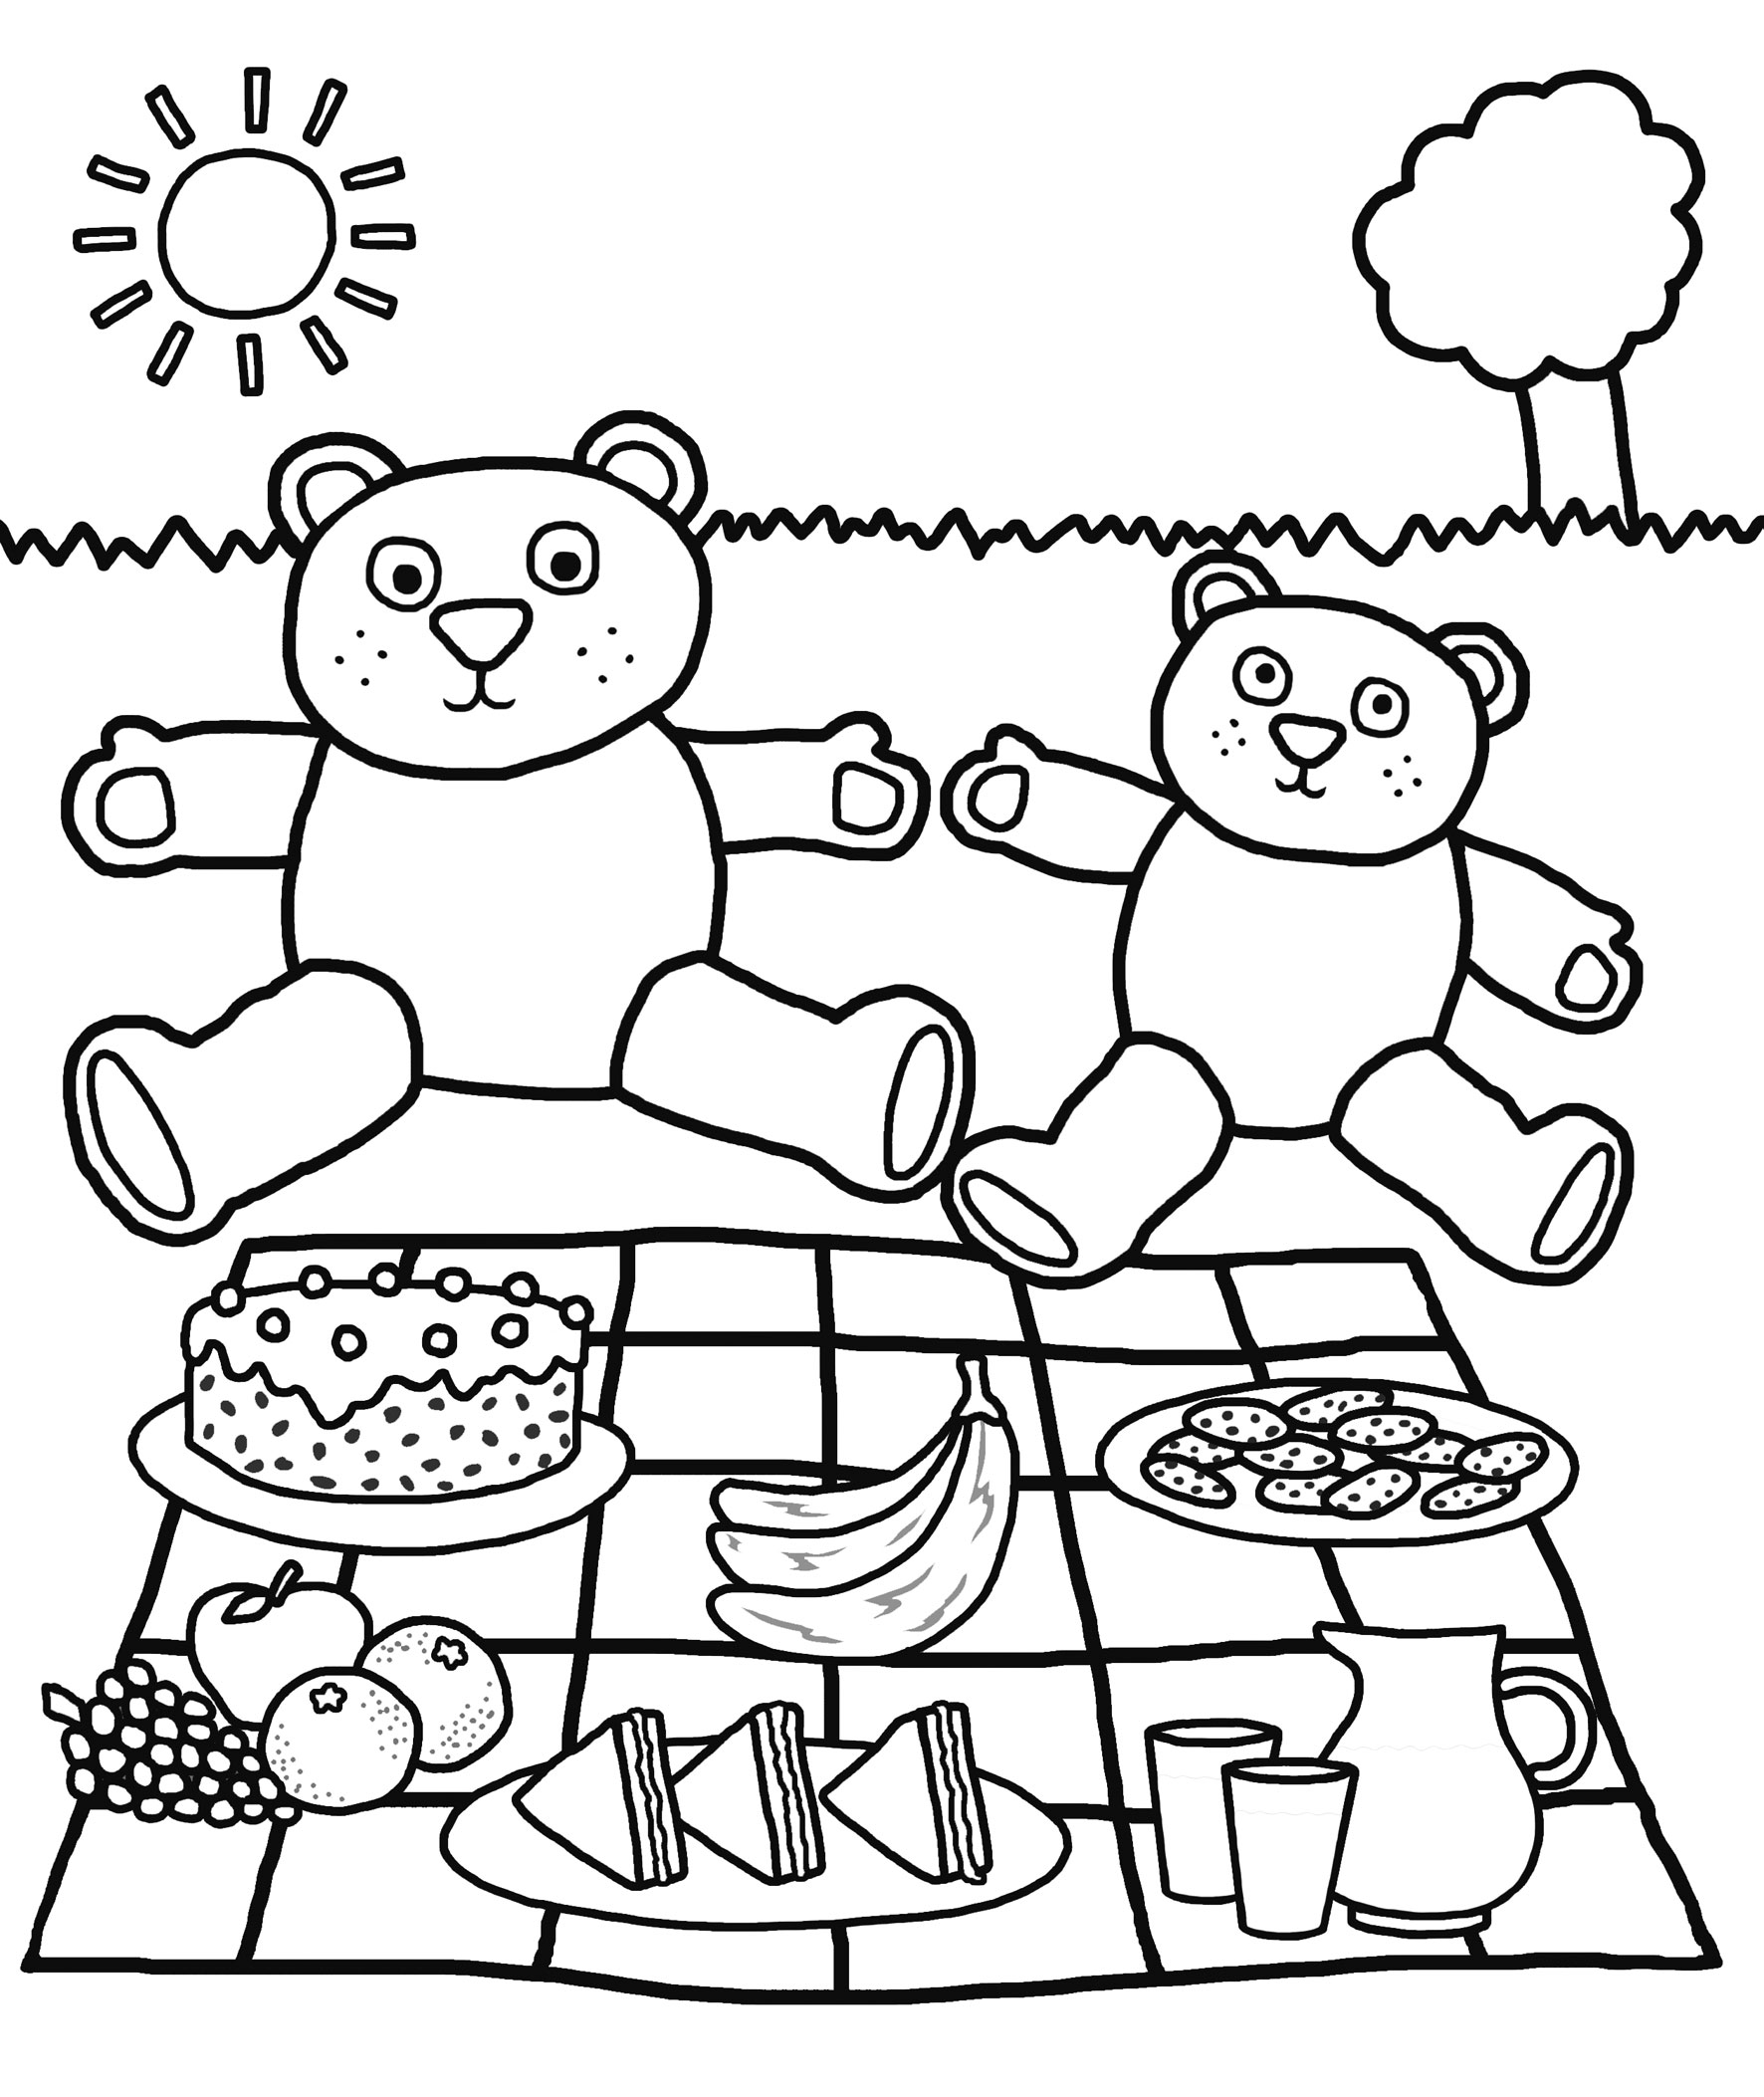 Bear Picnic Kindergarten Coloring Pages